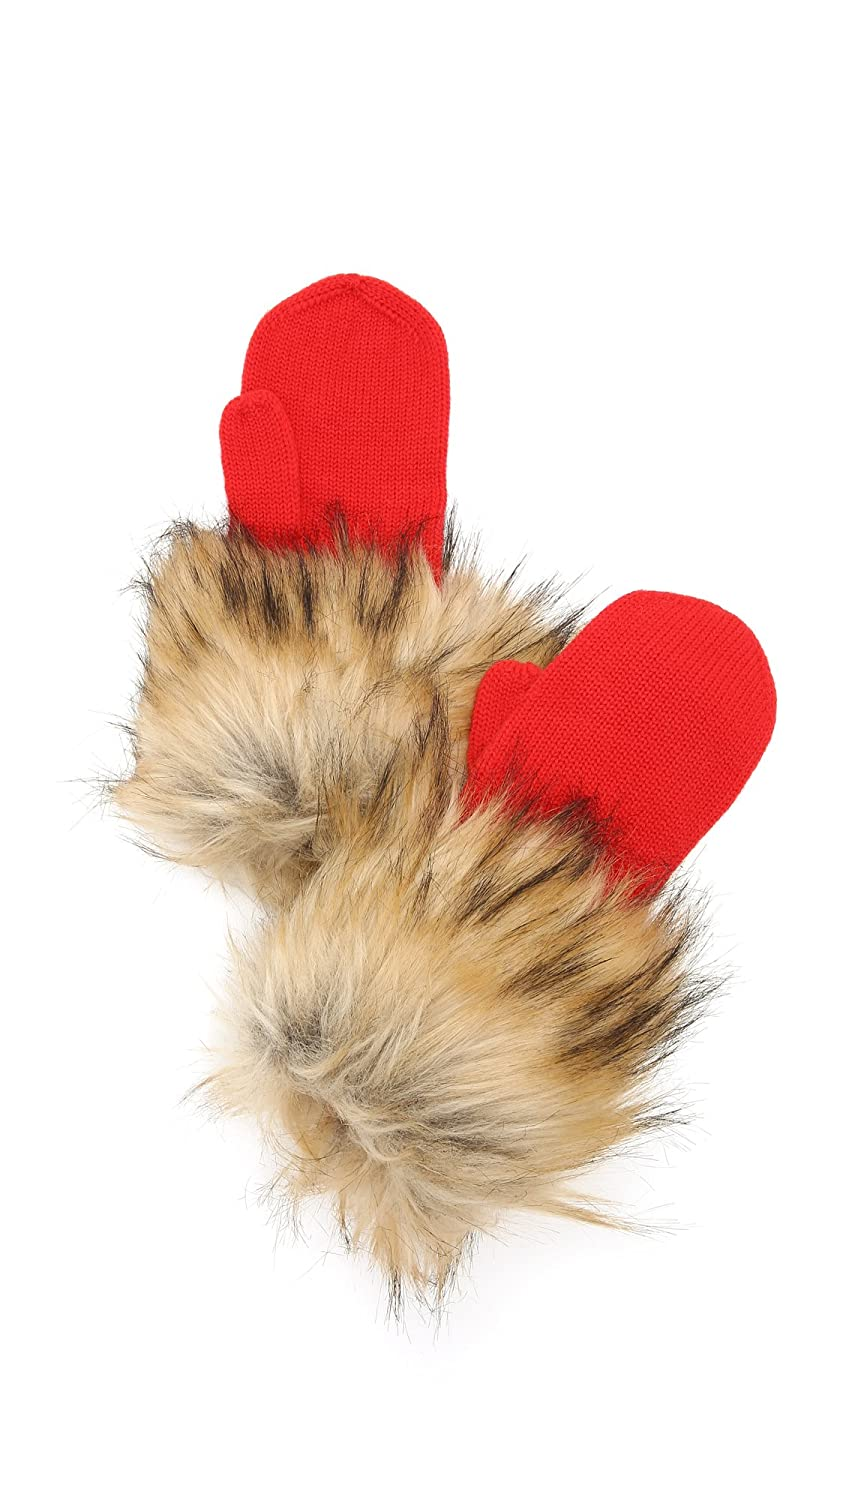 Kate Spade New York Women's Woodland Critters Mittens Fairytale Red One Size